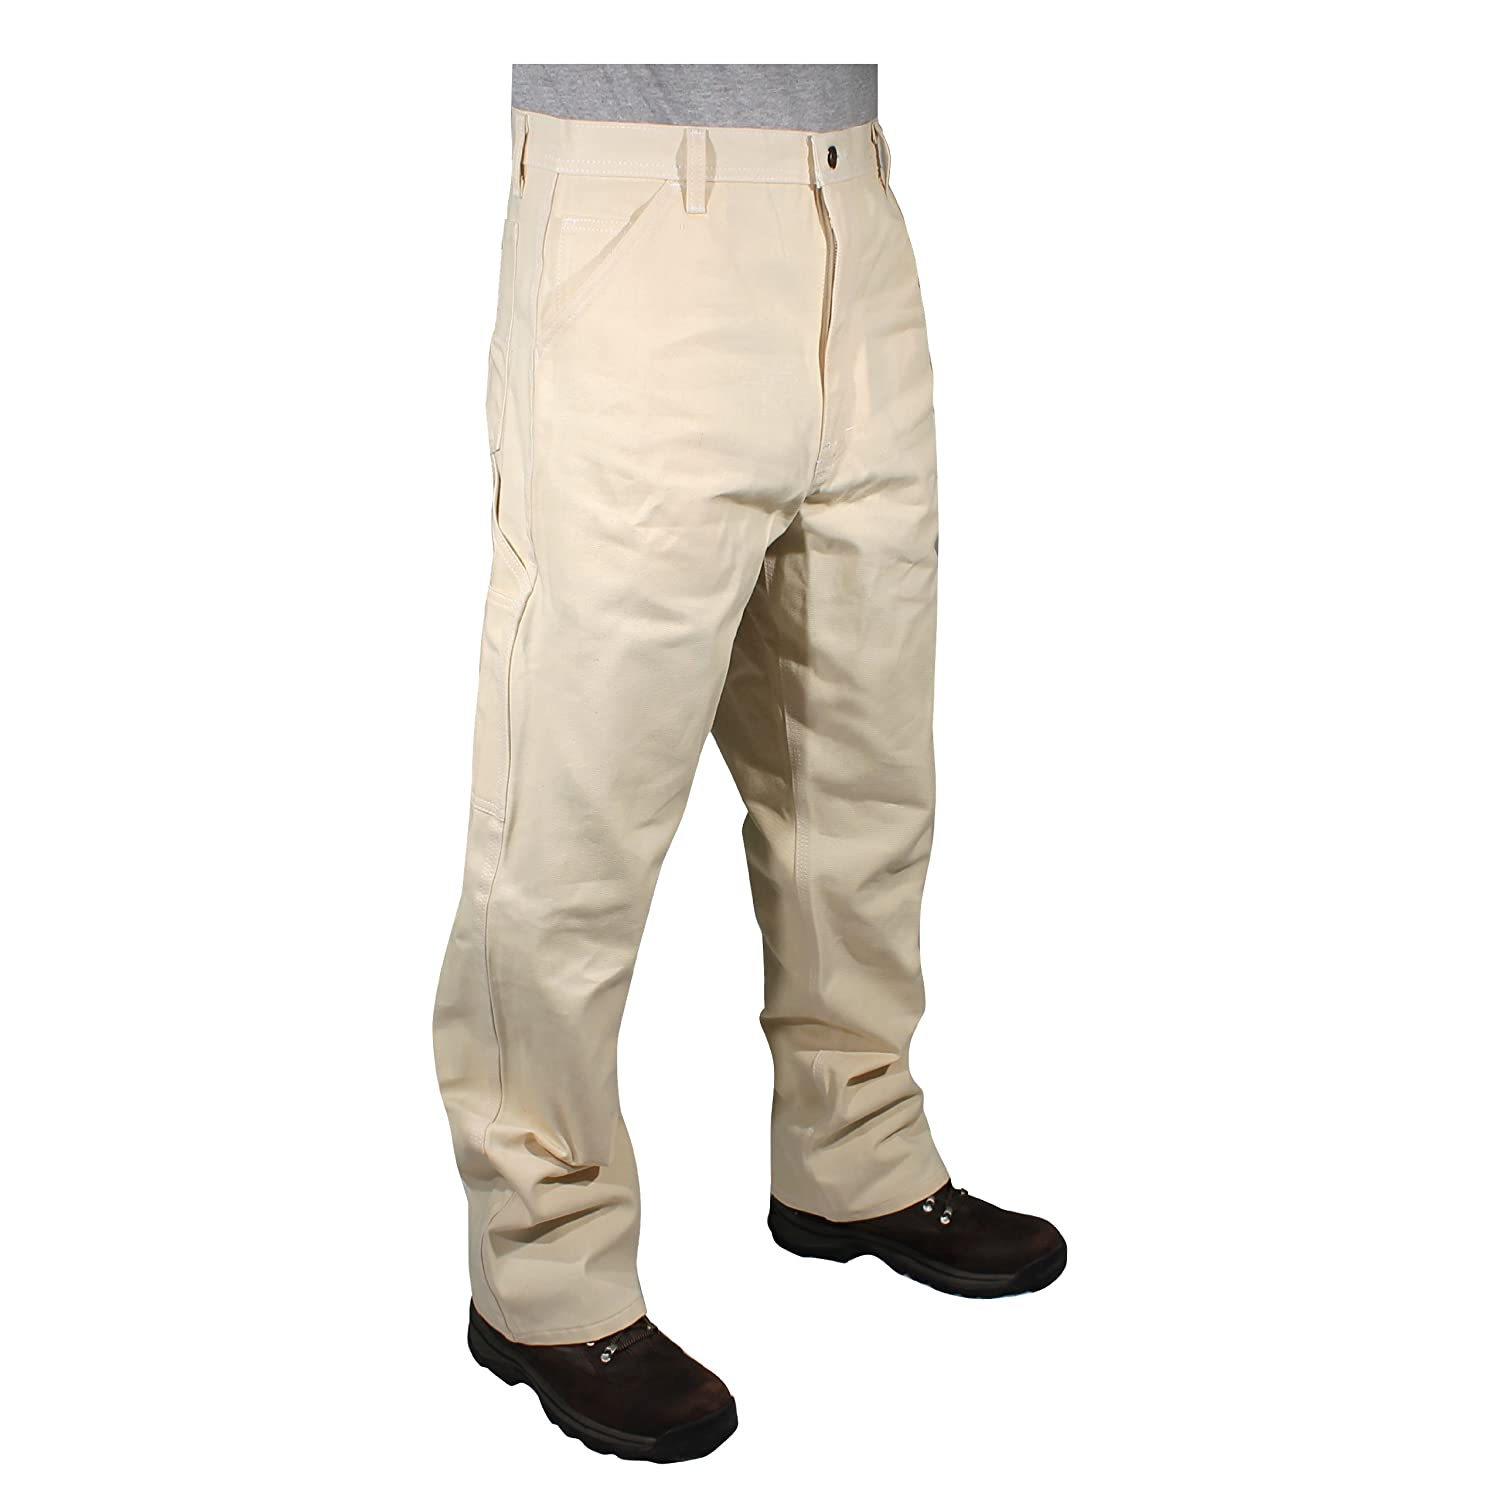 Rugged Blue CSGPTMP1000024310-NAT-30X34_A Painters Pants, English, Cotton, 30 x 34 Natural